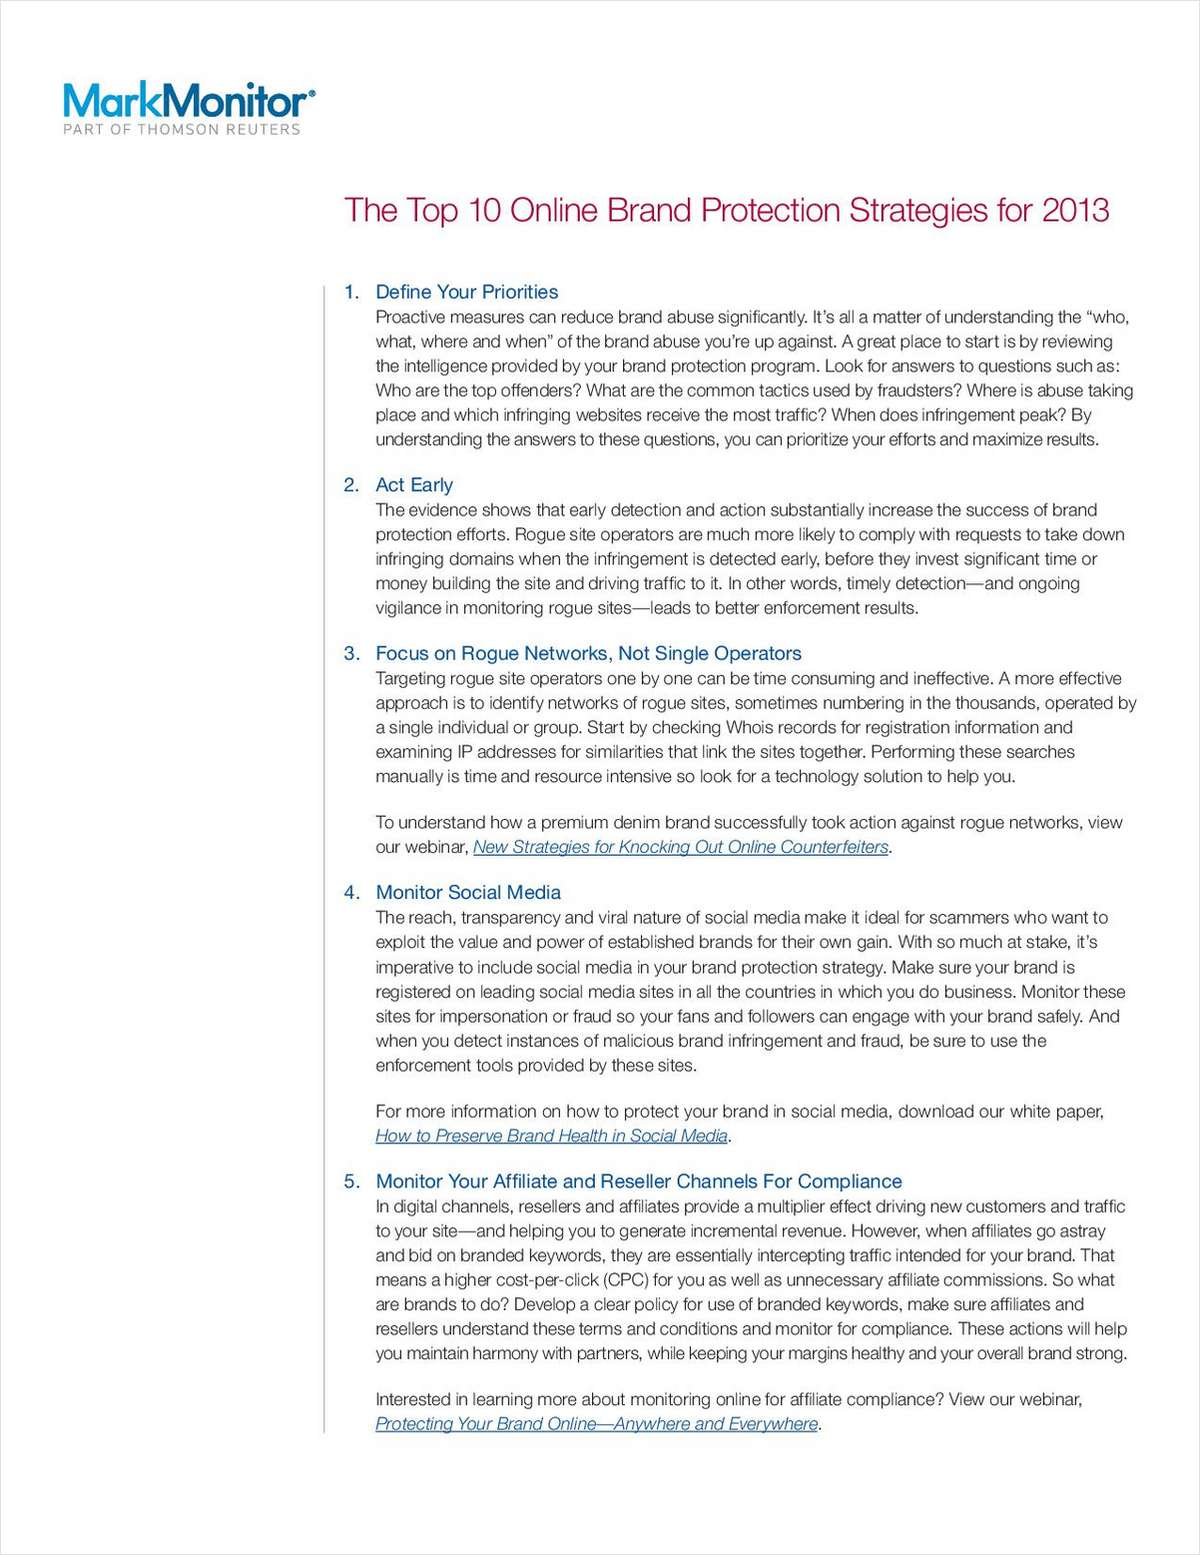 Top 10 Online Brand Protection Strategies for 2013